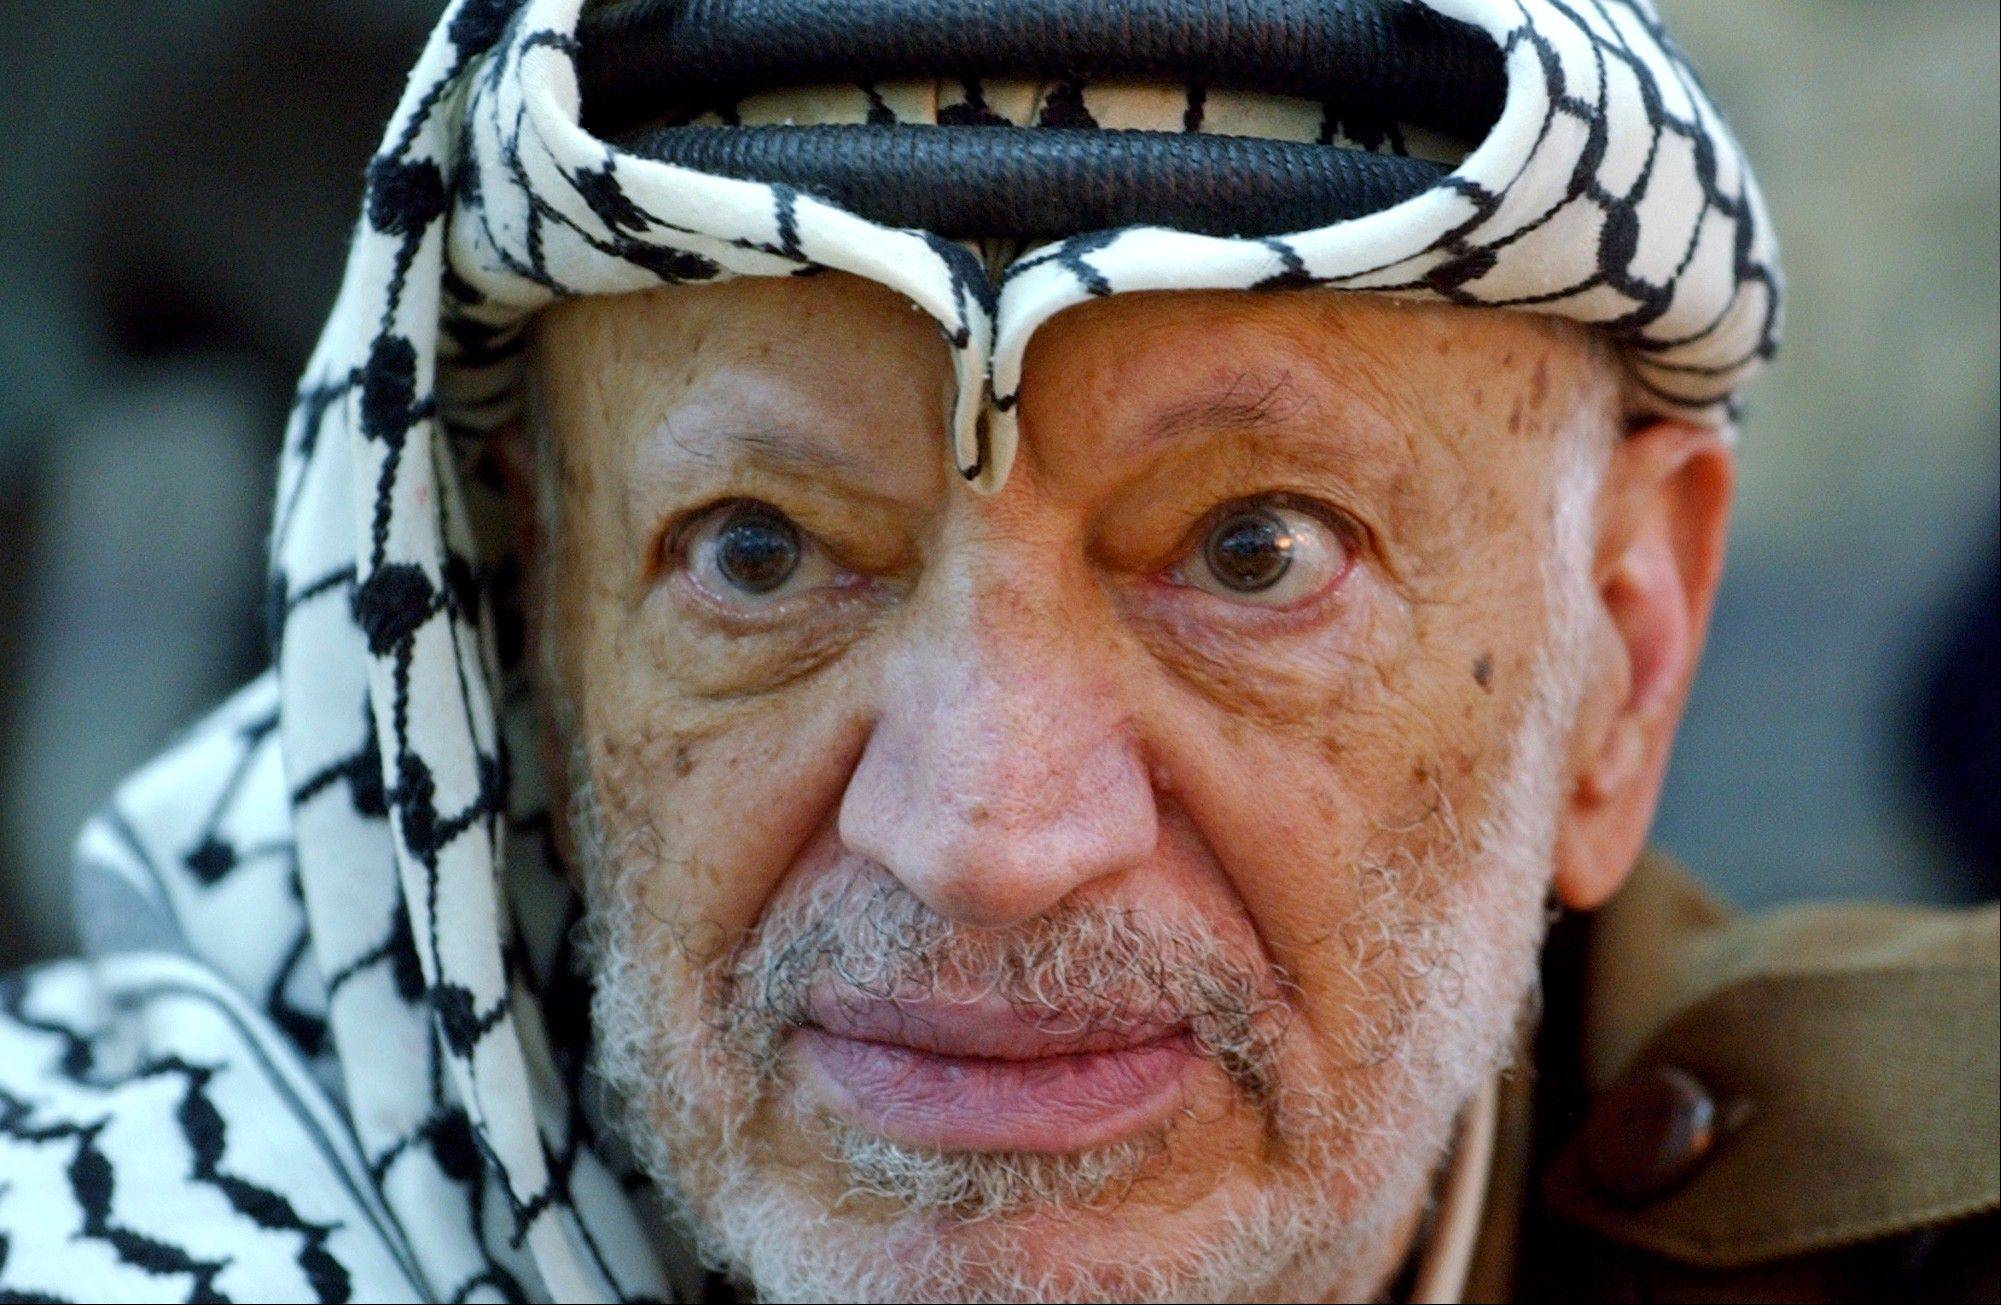 Al-Jazeera is reporting that a team of Swiss scientists has found moderate evidence that longtime Palestinian leader Yasser Arafat died of poisoning.